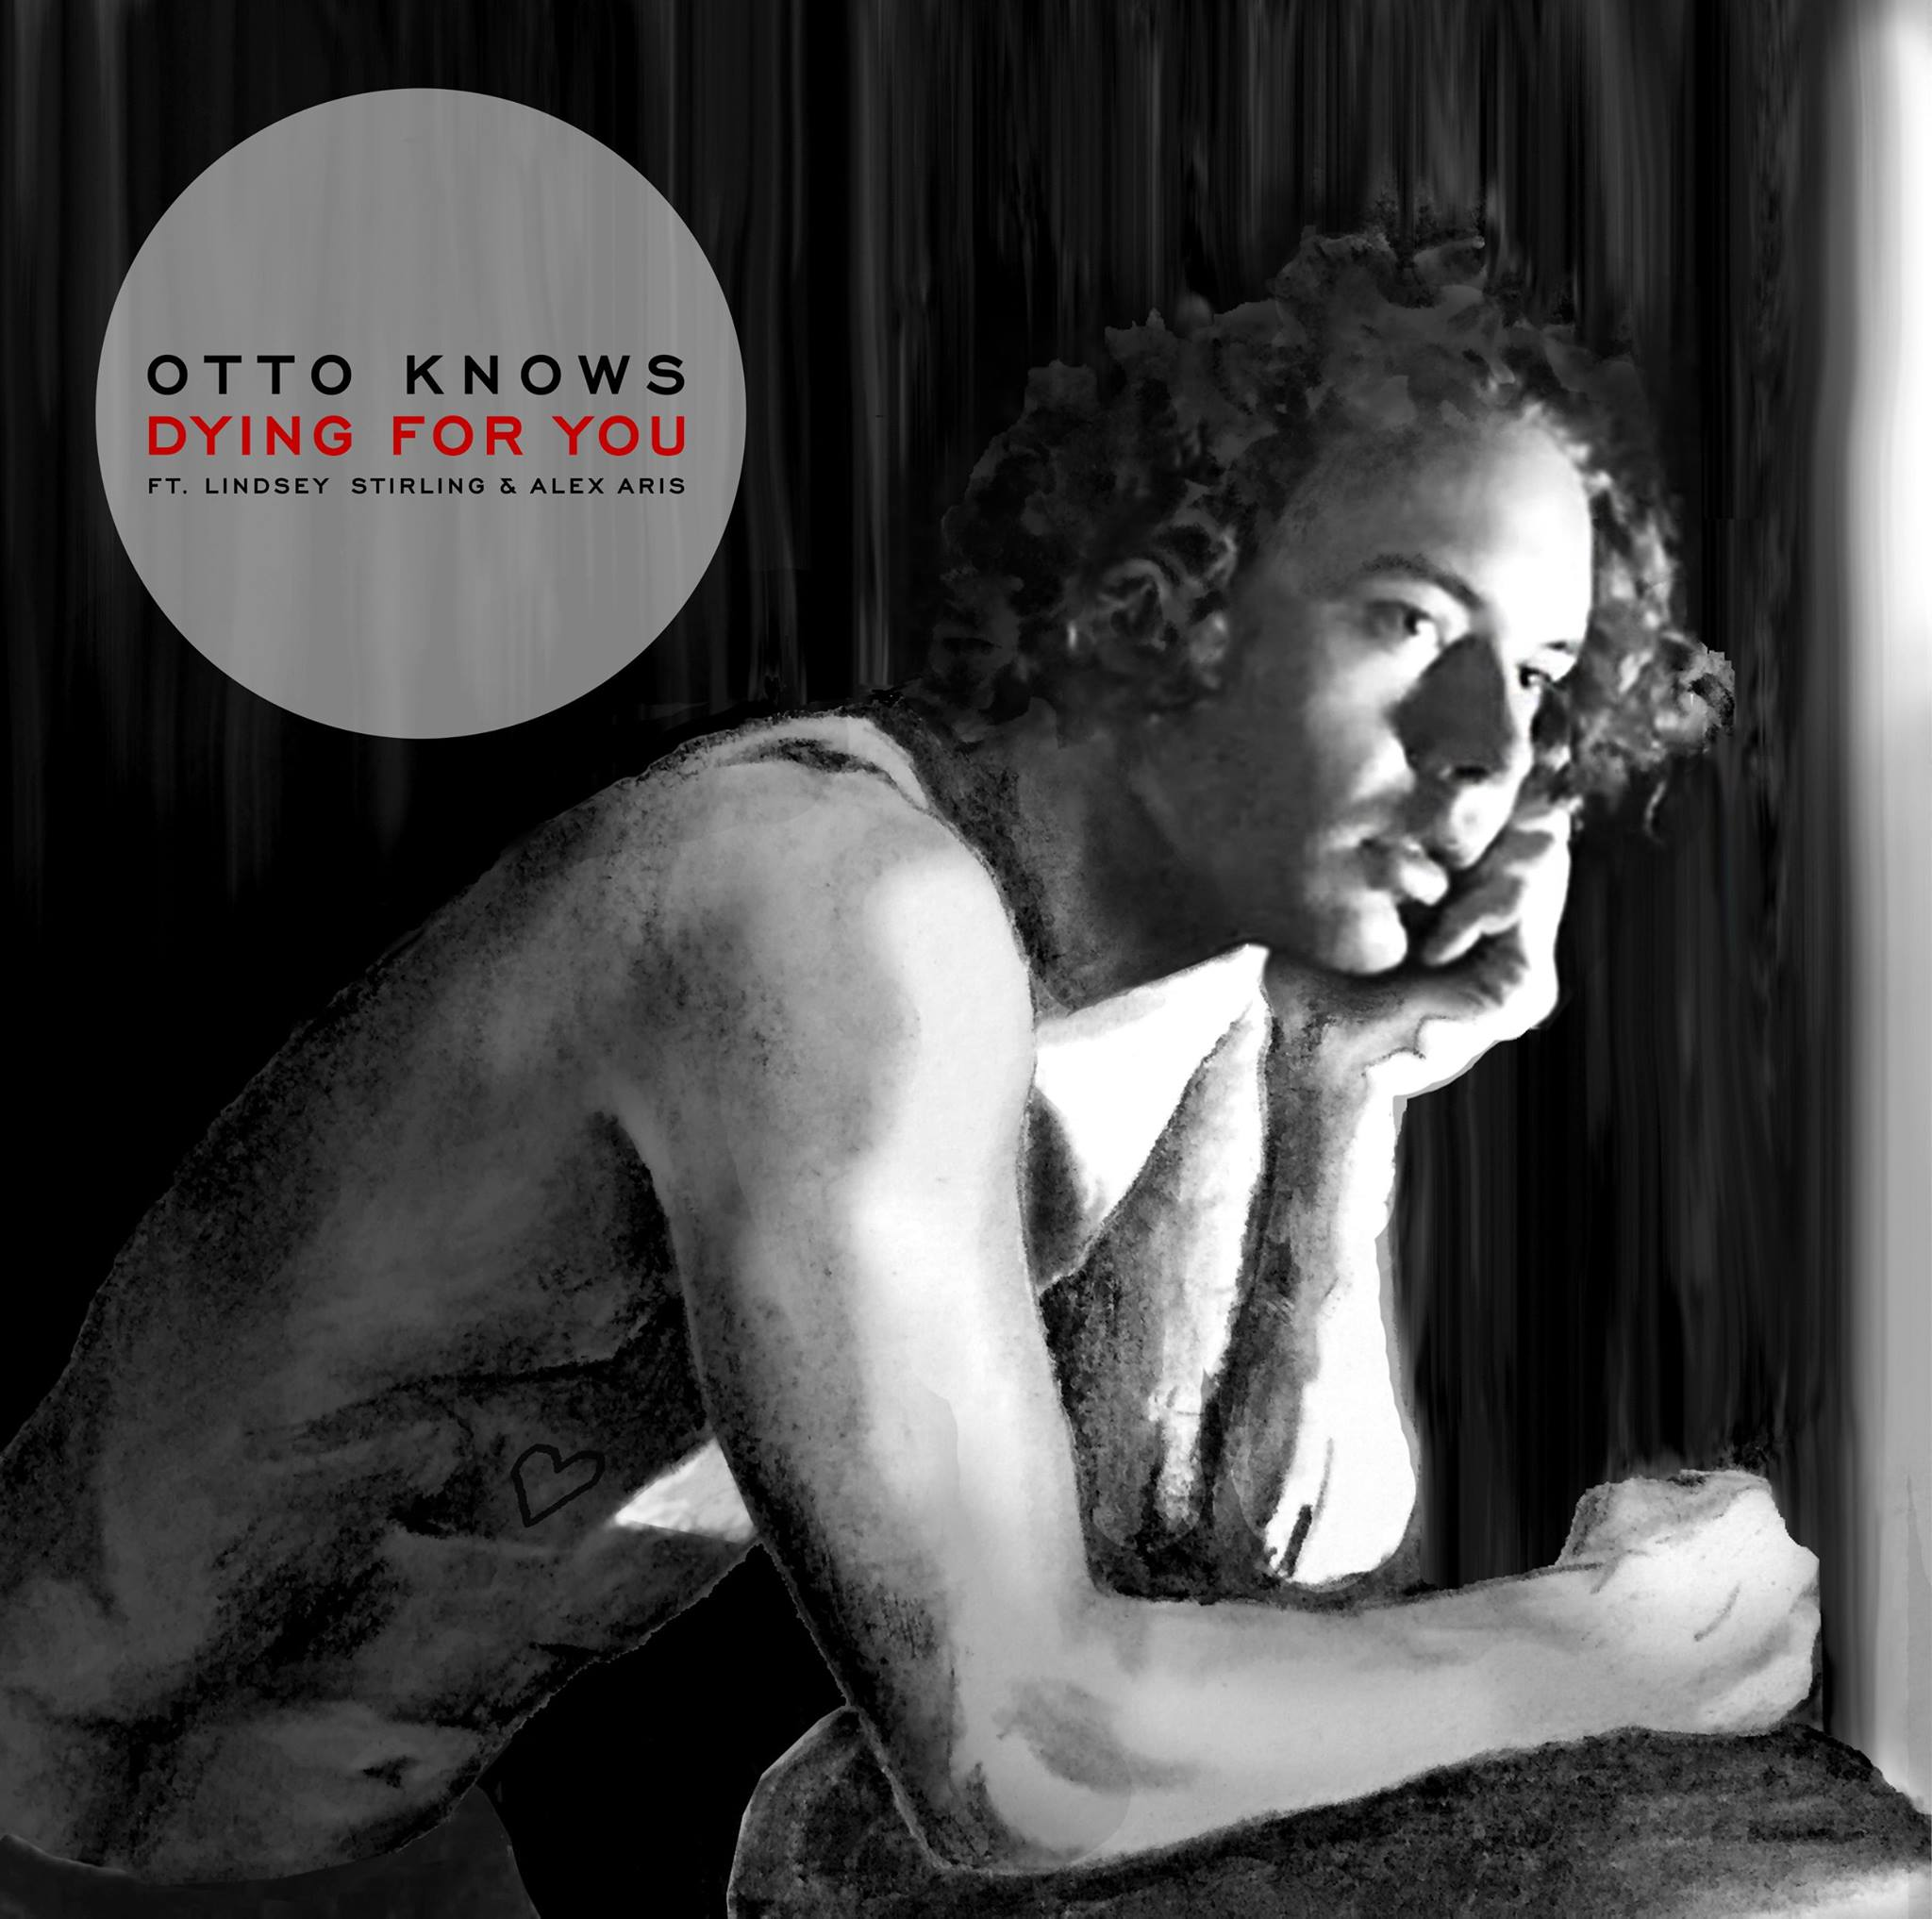 otto-knows-dying-for-you